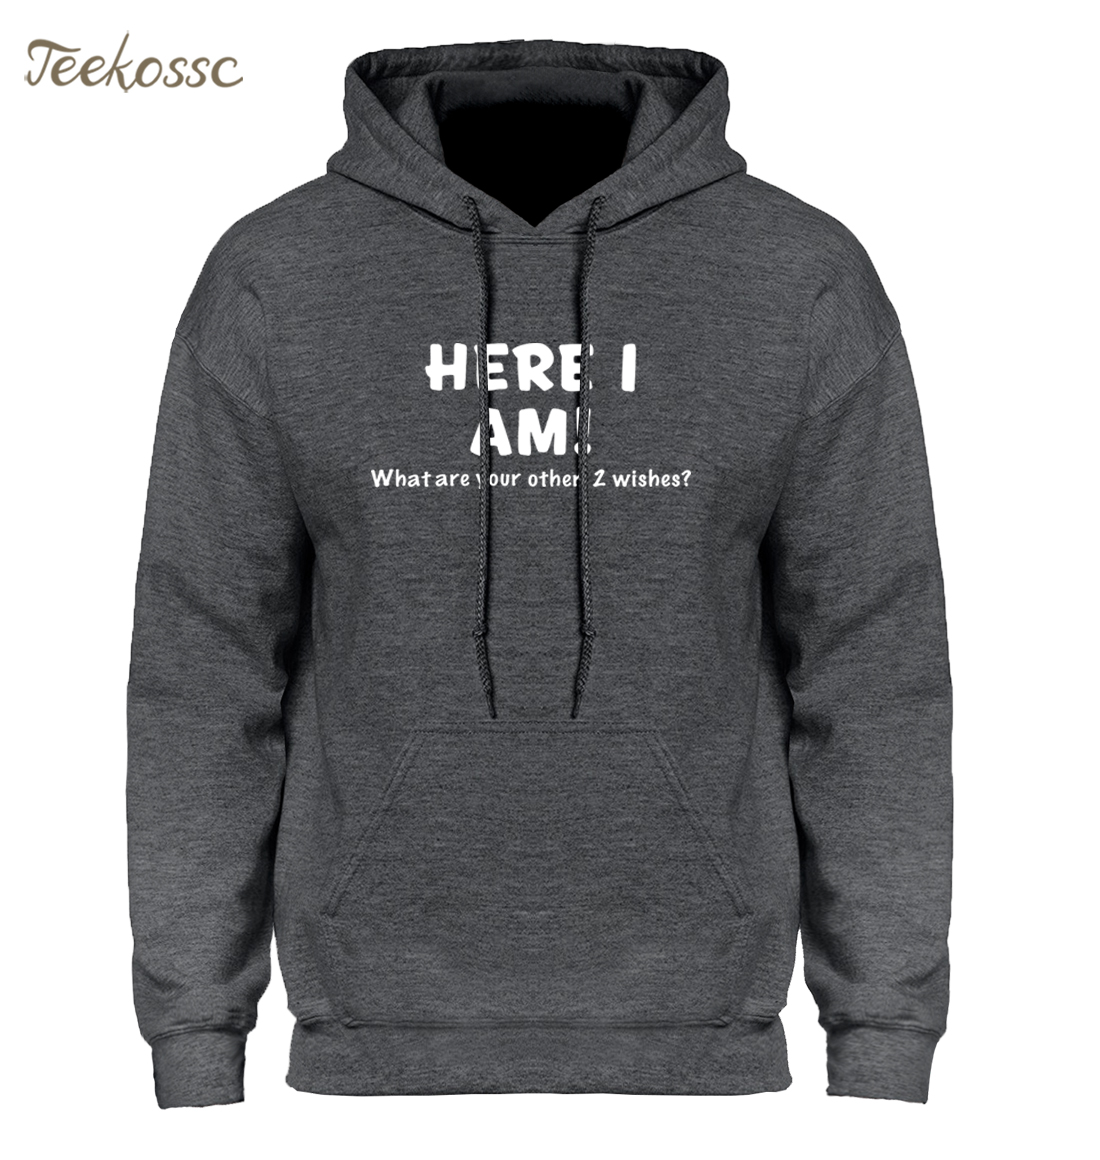 Funny Hoodie Here I Am What Are Your Other Two Wishes Hoodies Sweatshirt Men 2018 Winter Autumn Hooded Hoody Print Homme Slim